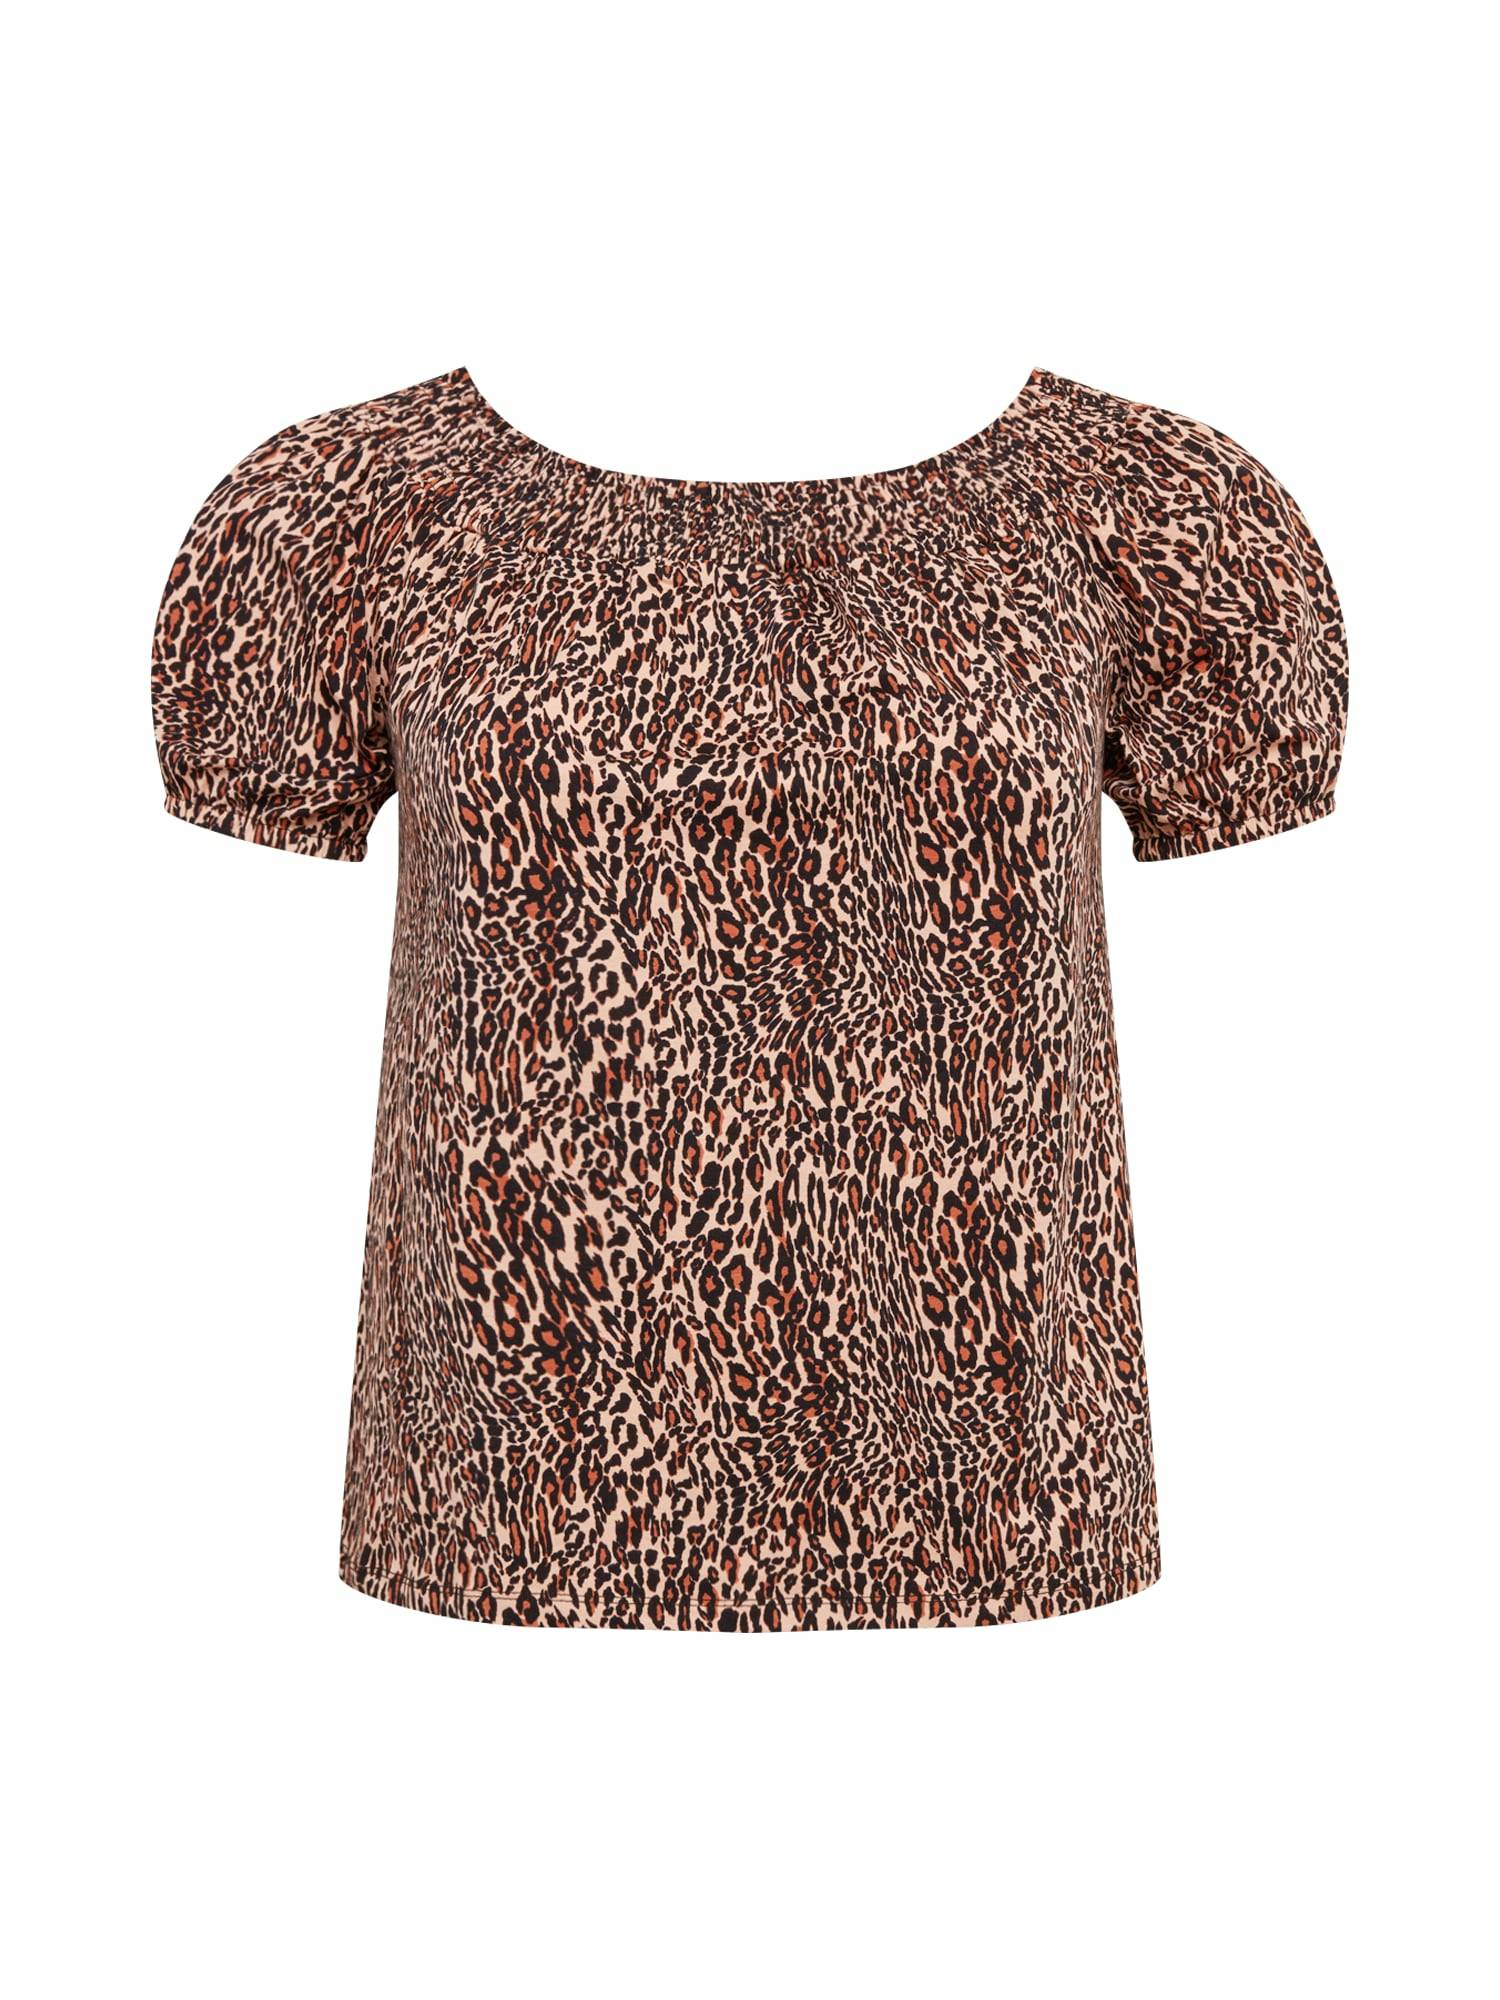 Dorothy Perkins Curve T-shirt  - Marron - Taille: 28 - female